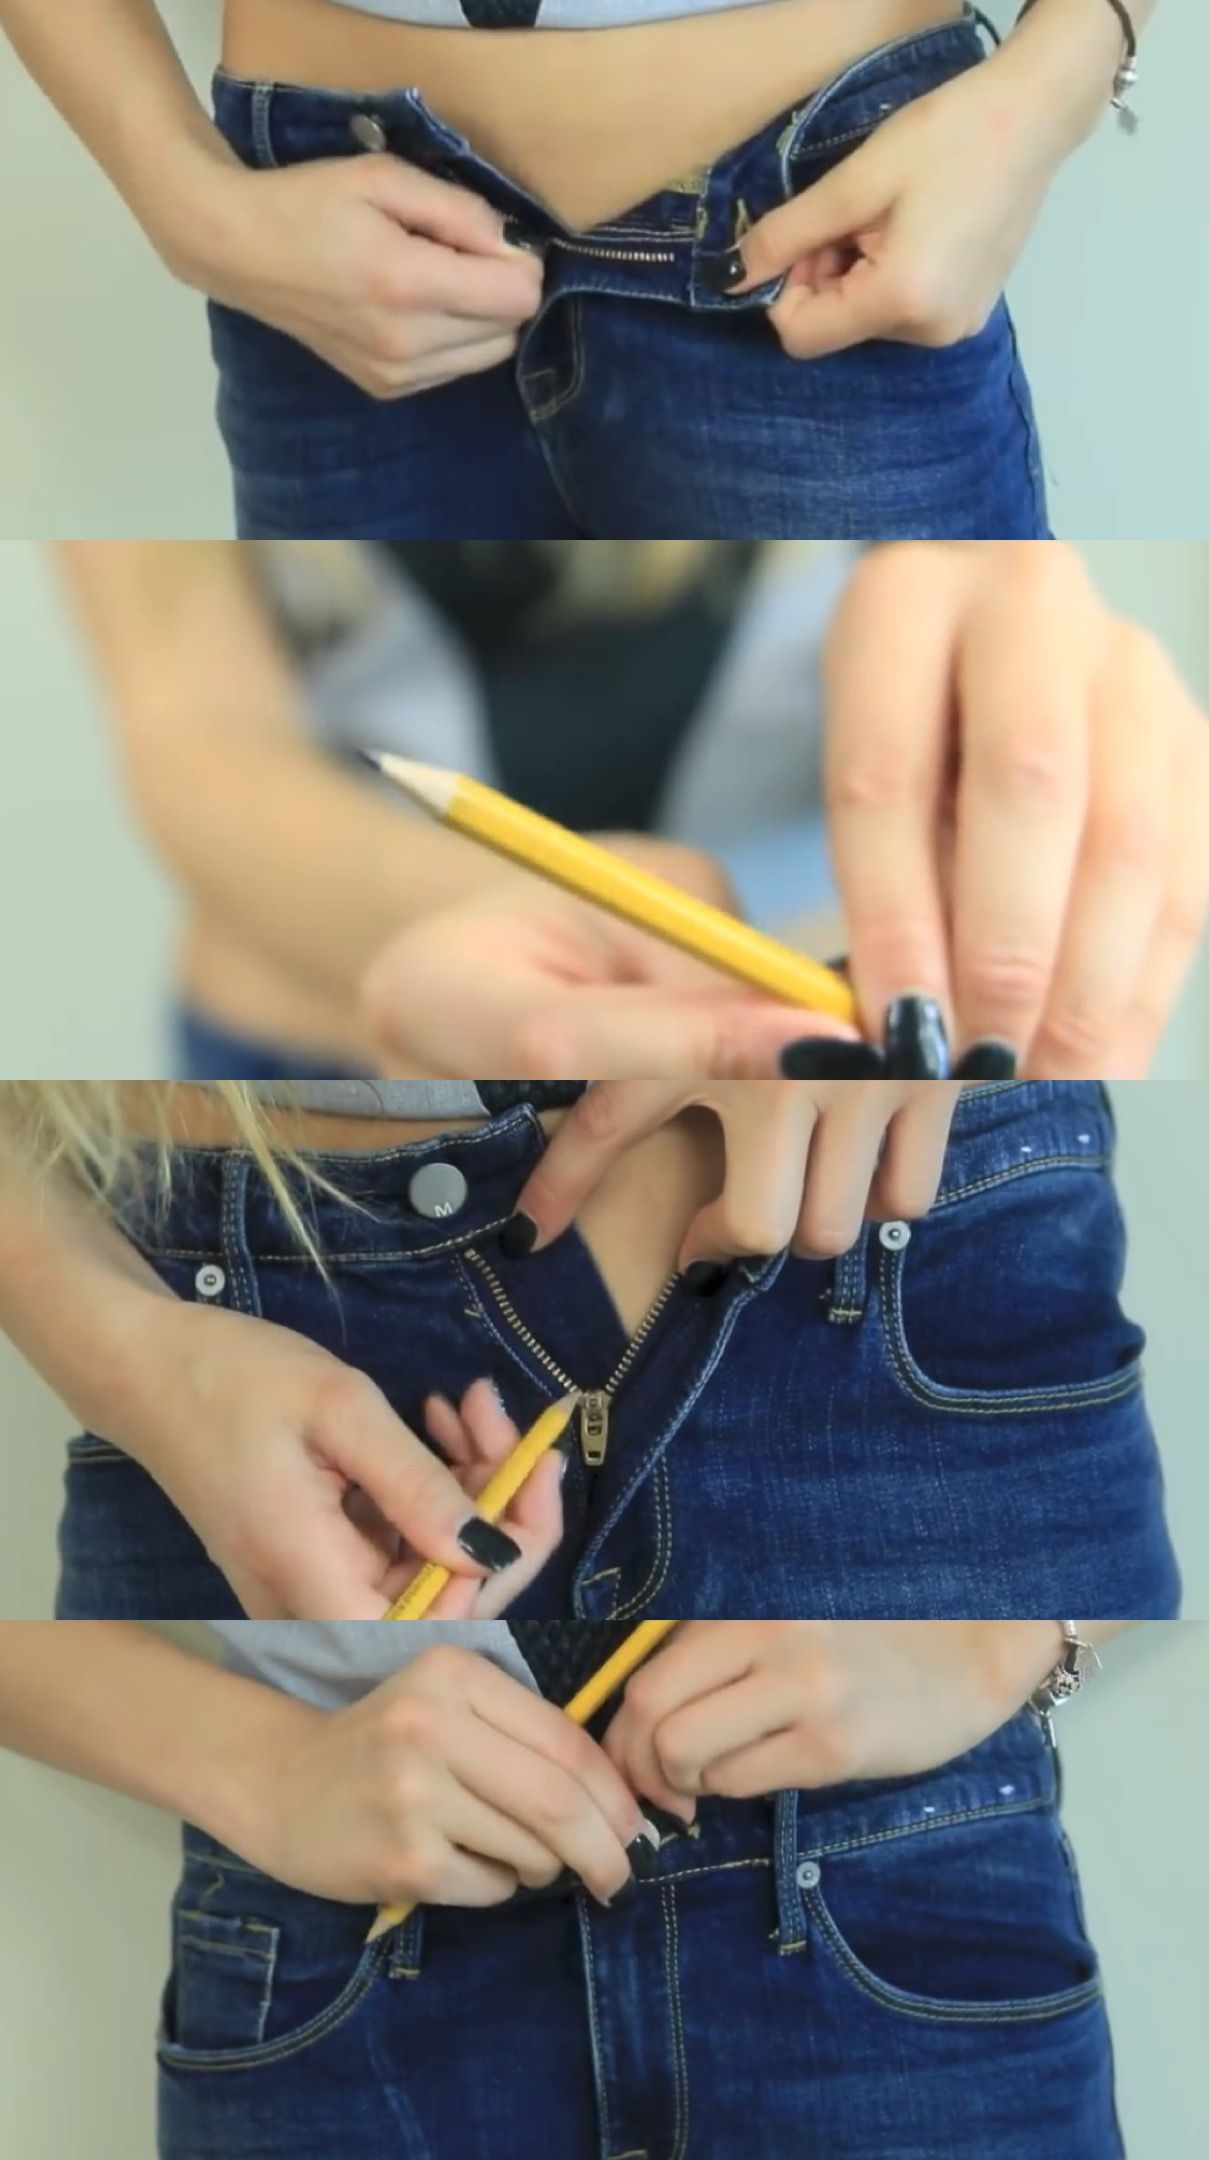 Weird Clothing Life Hacks: Zipper-1) Take the pair of jeans, or anything that won't zip up. 2) Get a regular graphite pencil. 3) Rub it against the zippers. 4) Your done! (rclbeauty101)